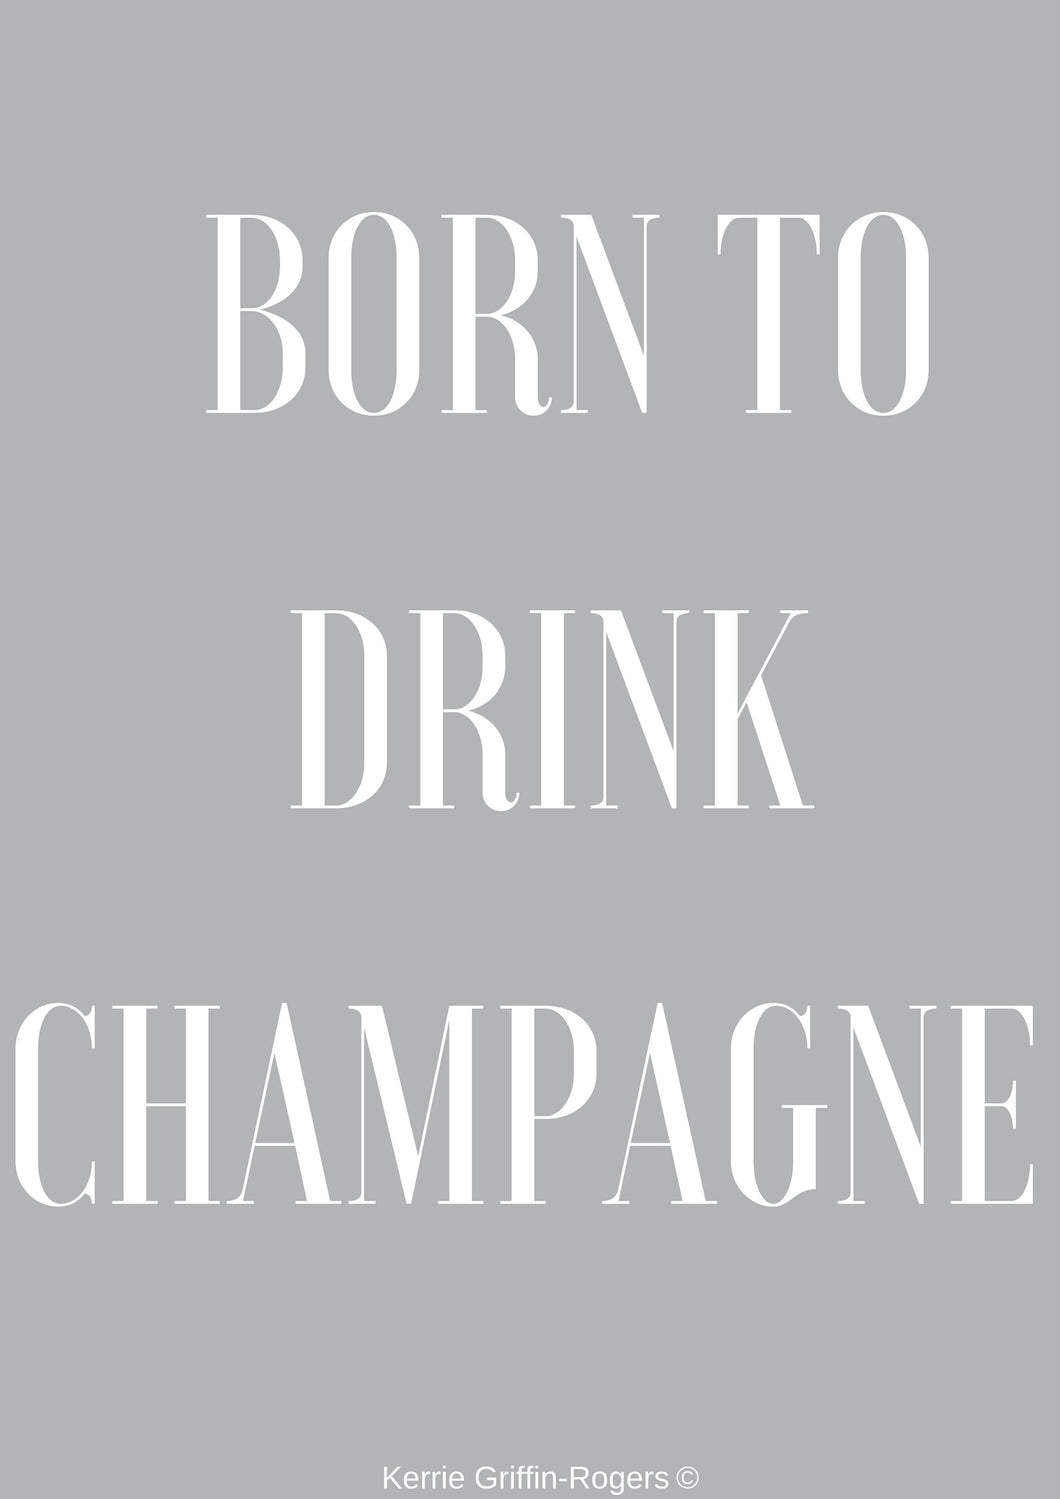 Framed Print - Born to drink champagne